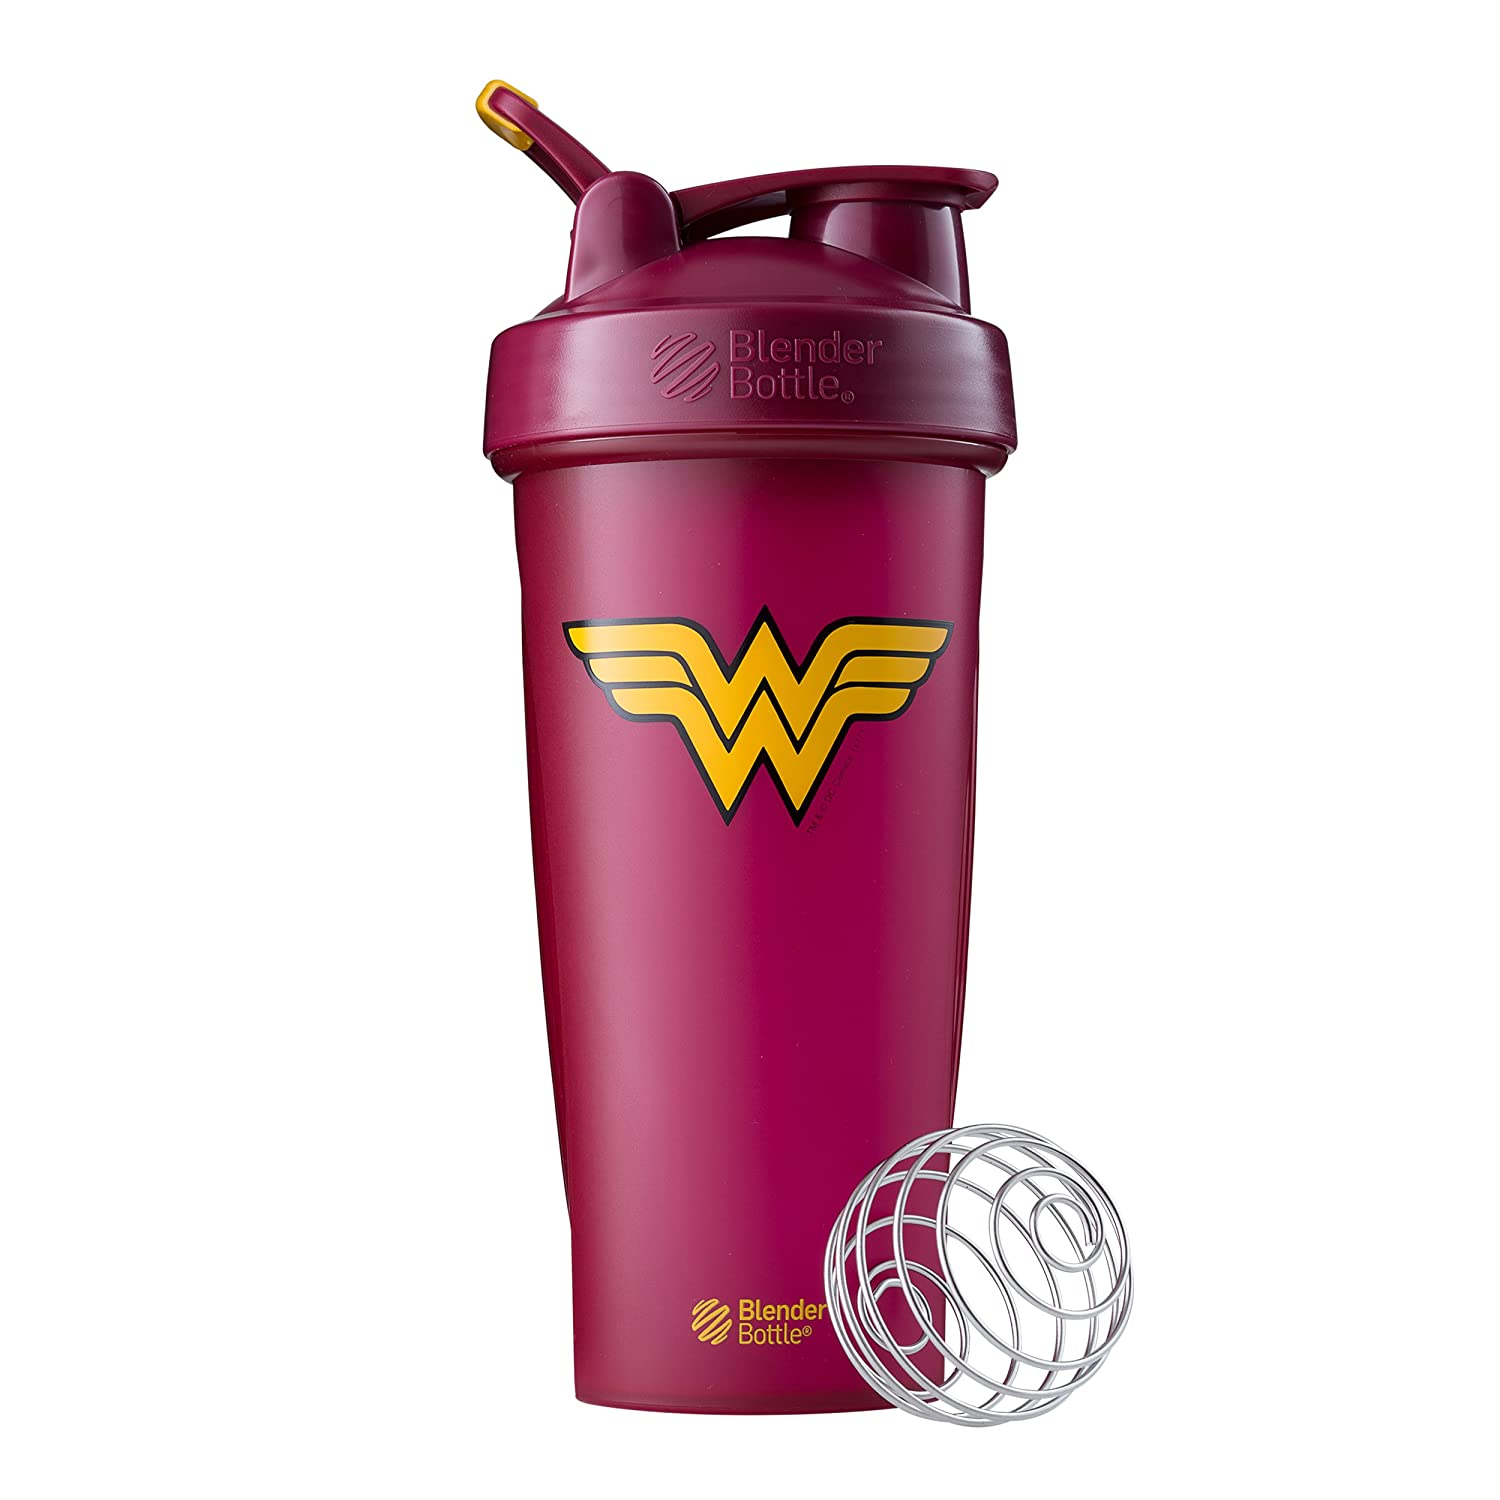 BlenderBottle Justice League Superhero Classic 28-Ounce Shaker Bottle, Wonder Woman